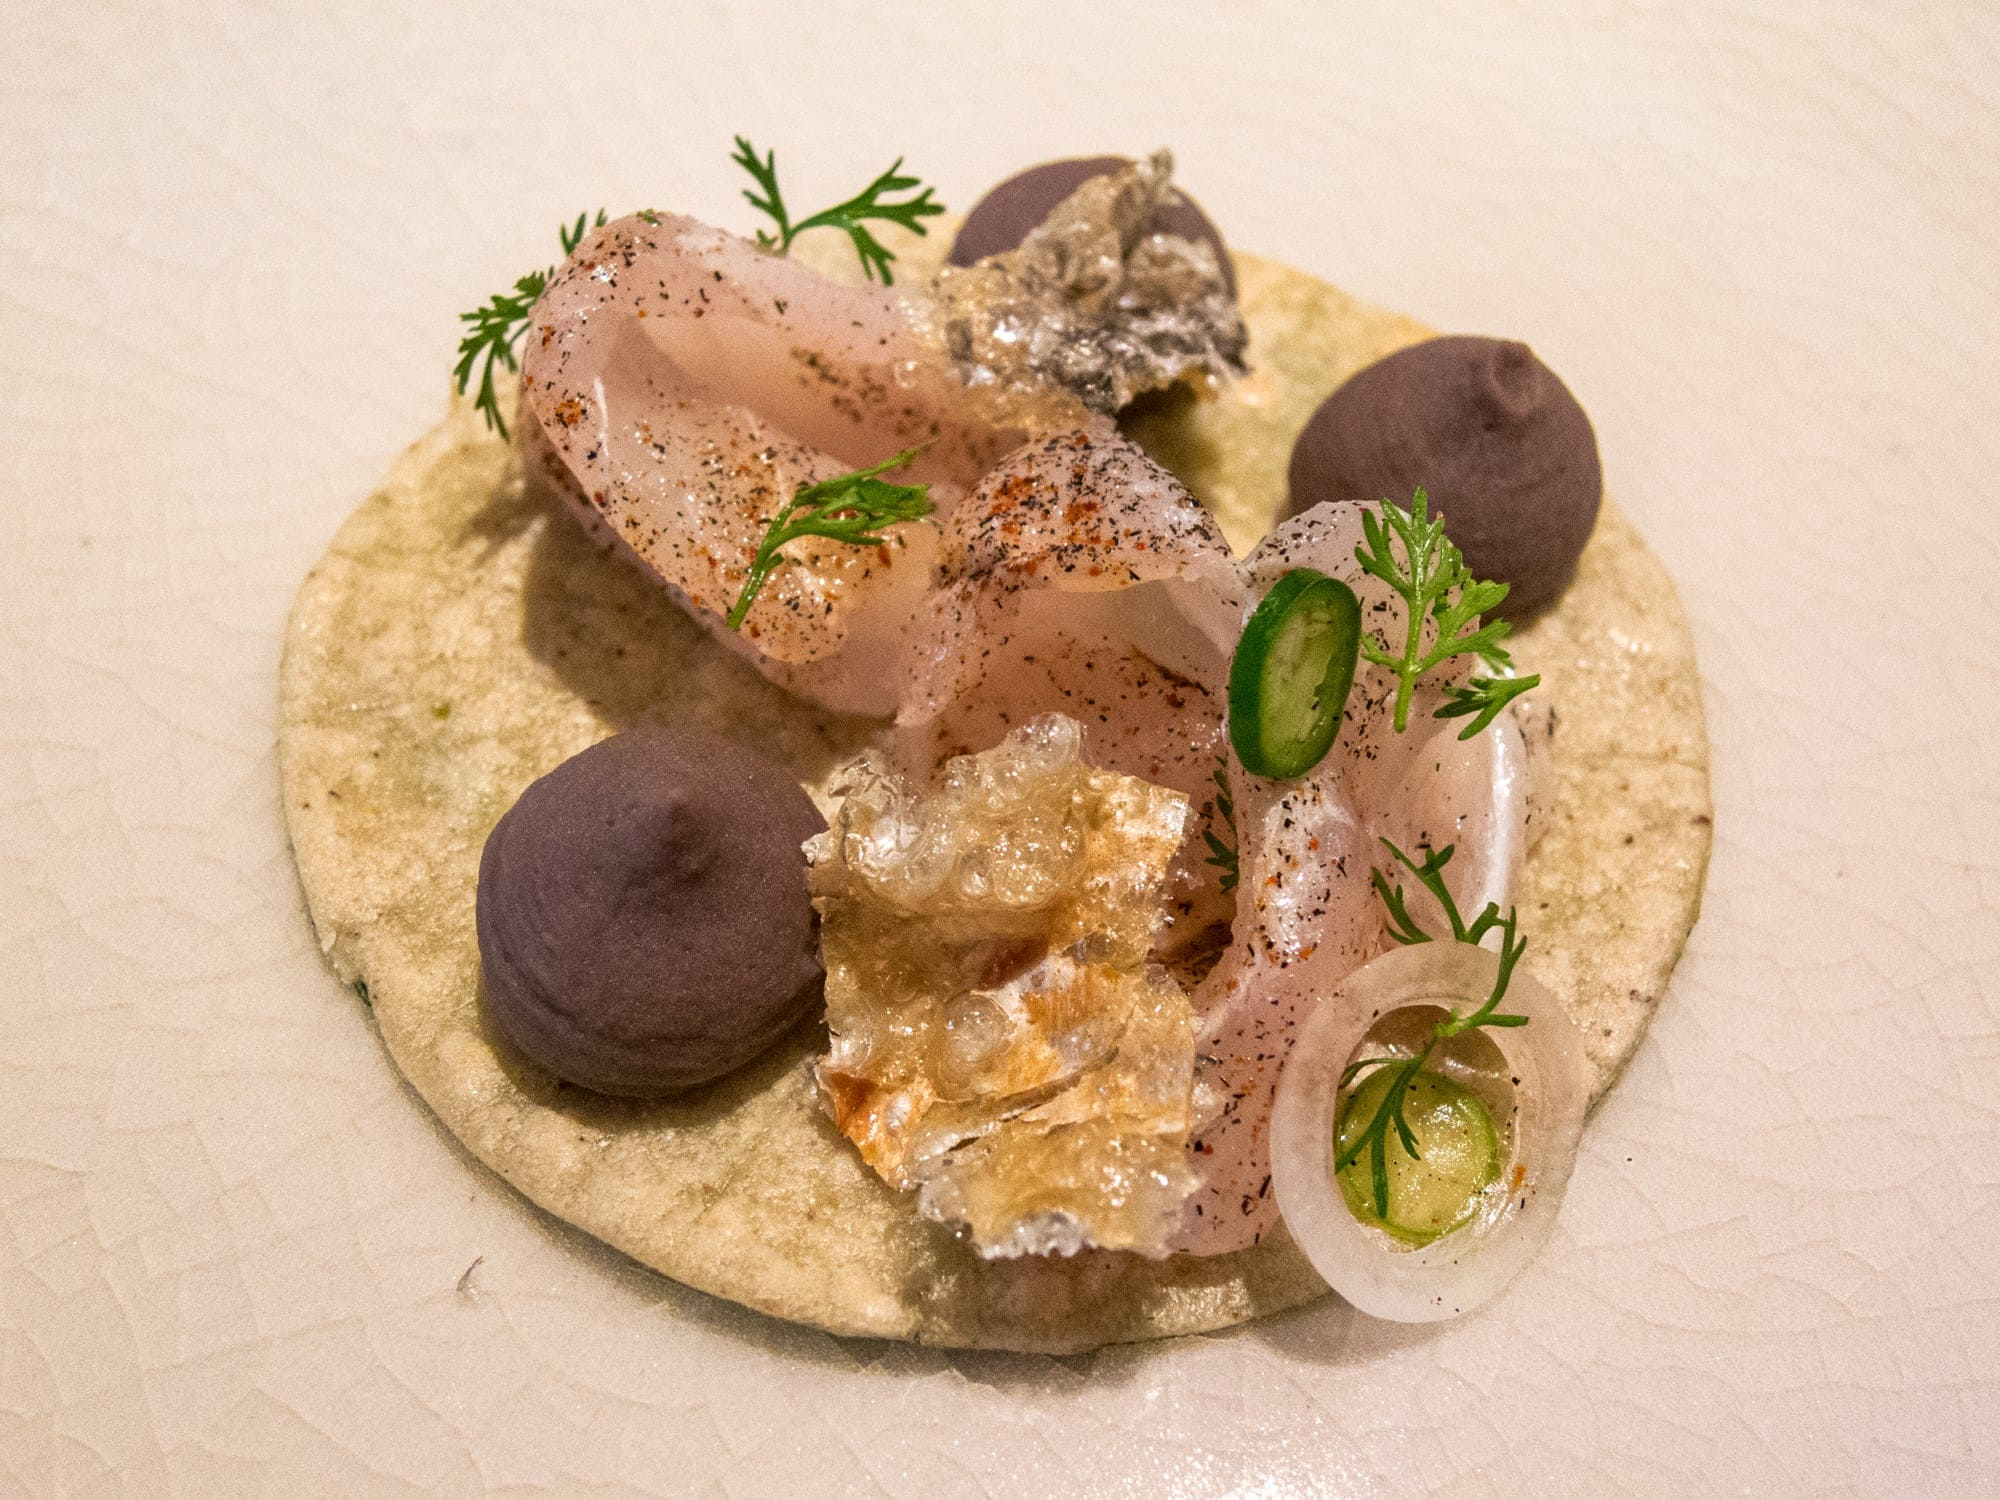 Fish ceviche taco with crispy fish skin and beans